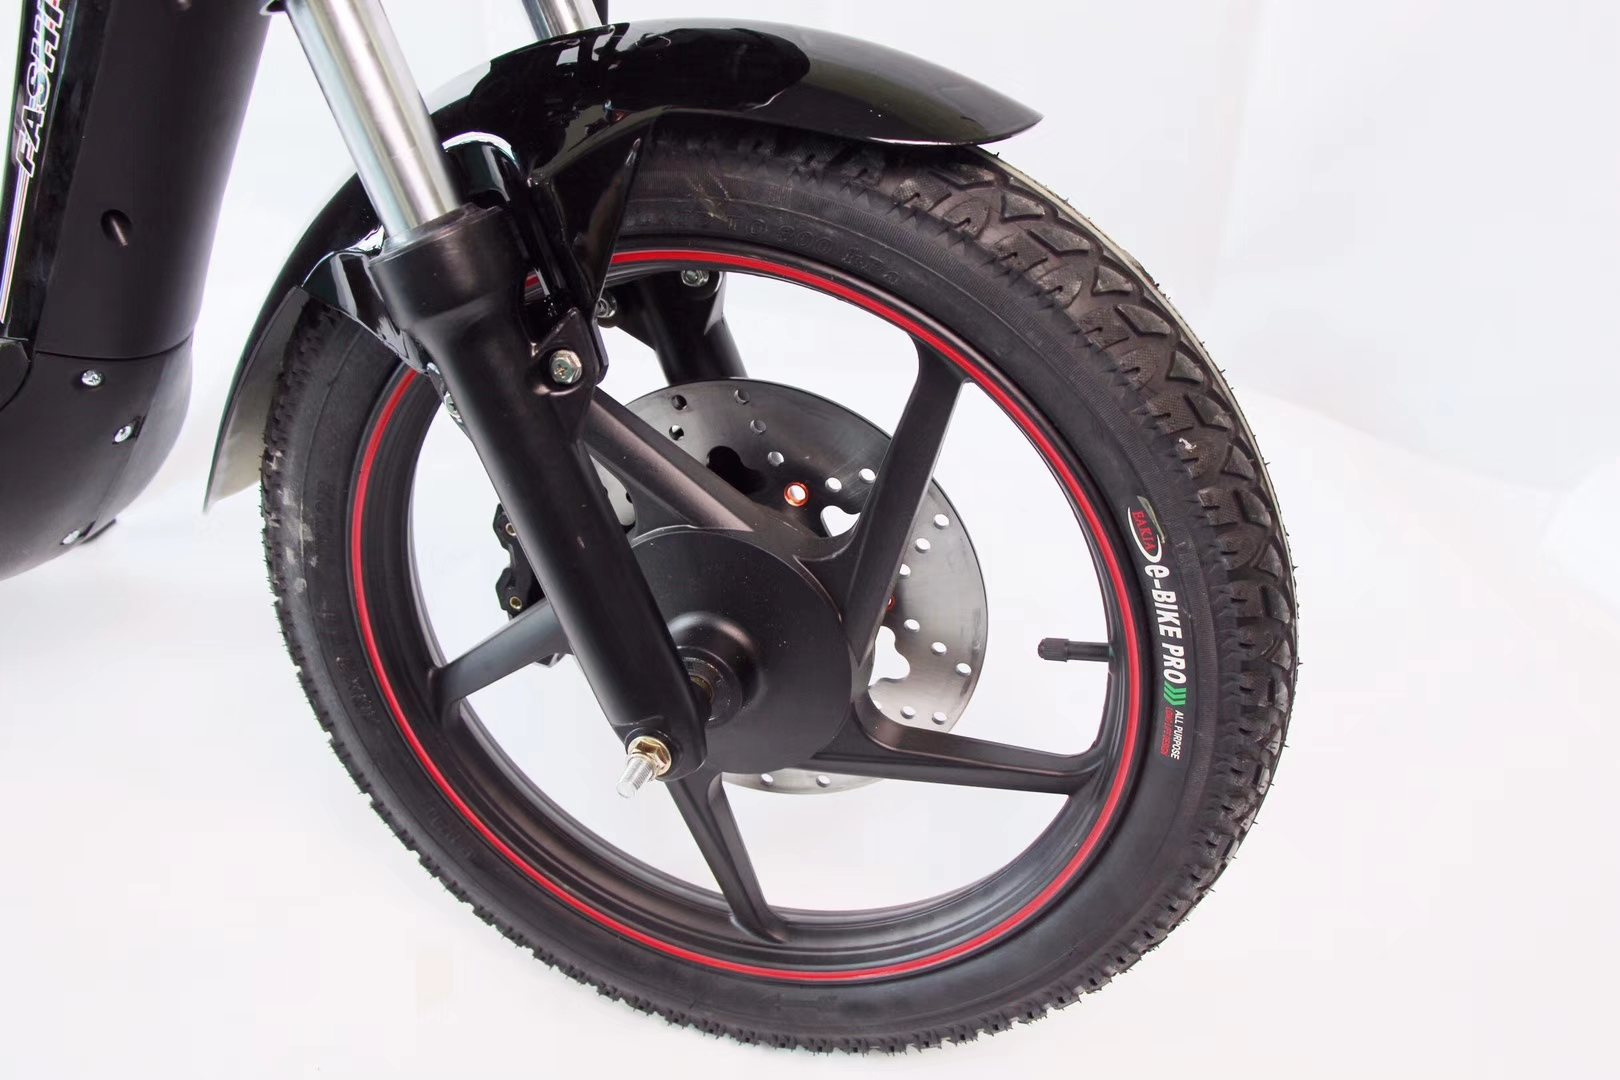 18 Inch Tires 350W Motor Electric Motorcycle Scooter Adult 48V 8Ah 2 Wheel Electric Motorcycle